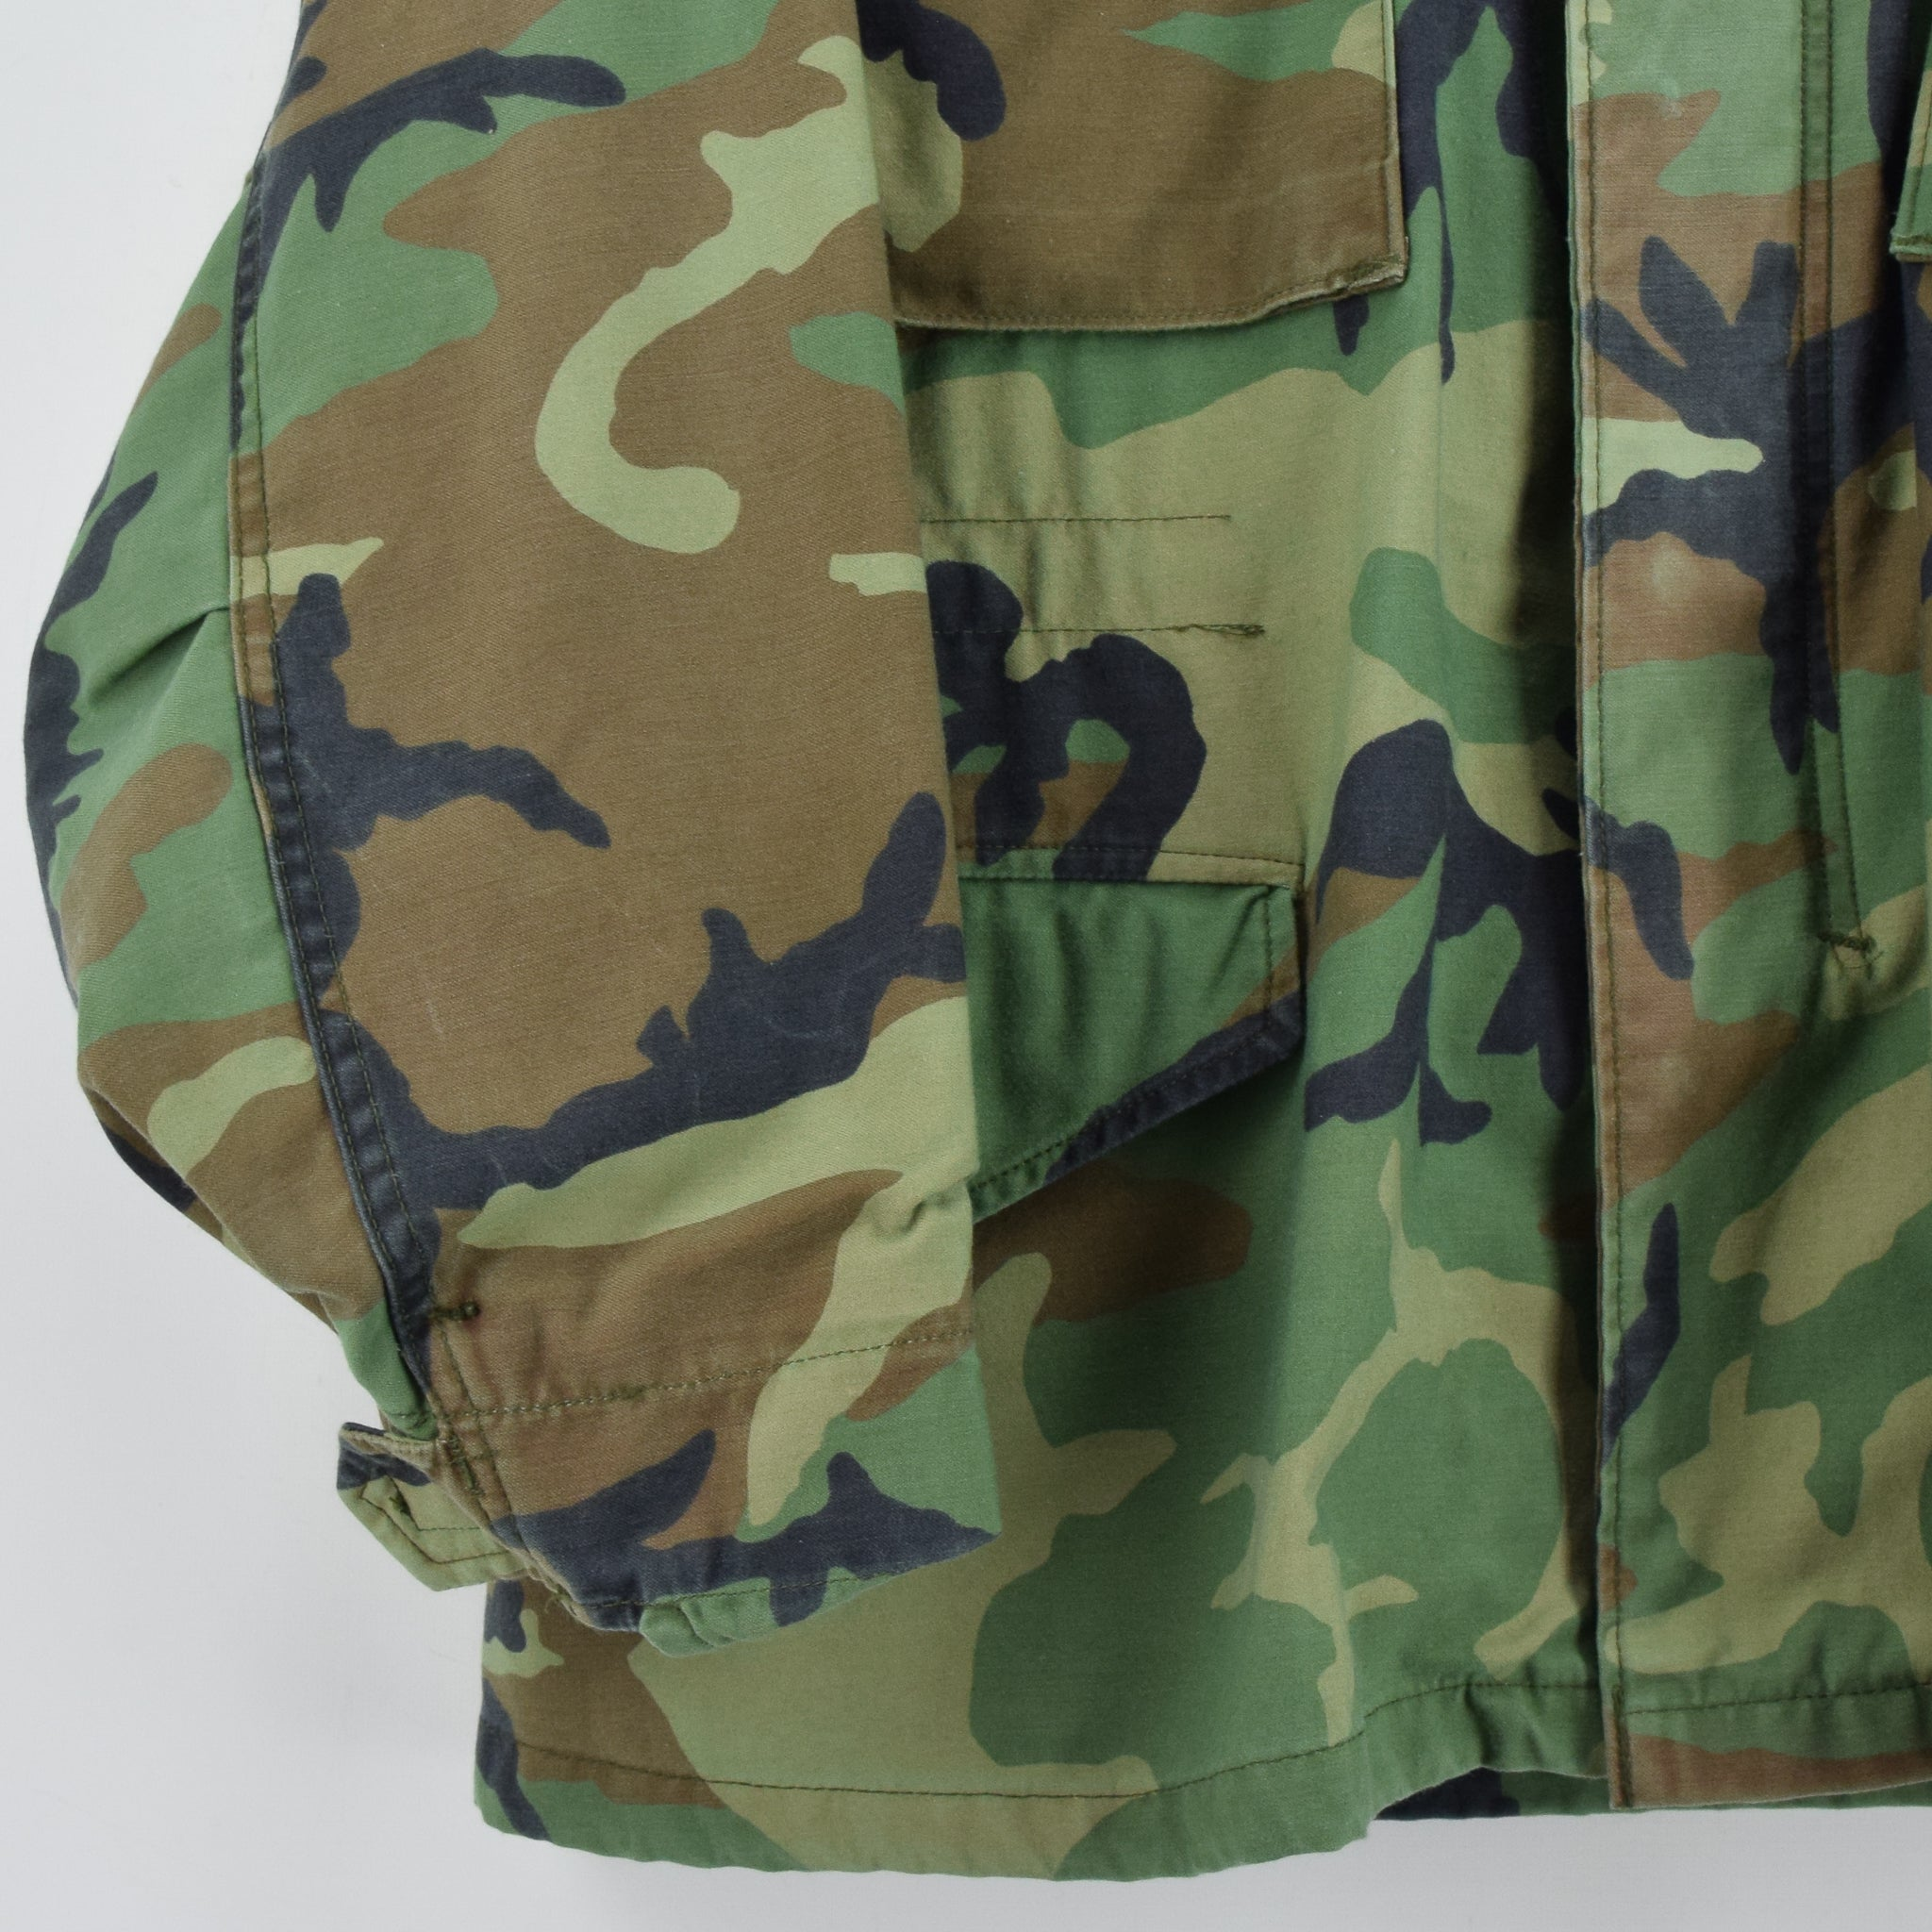 Vintage 90s M-65 Woodland Camouflage Field Coat US Army Cotton Military Jacket M front hem